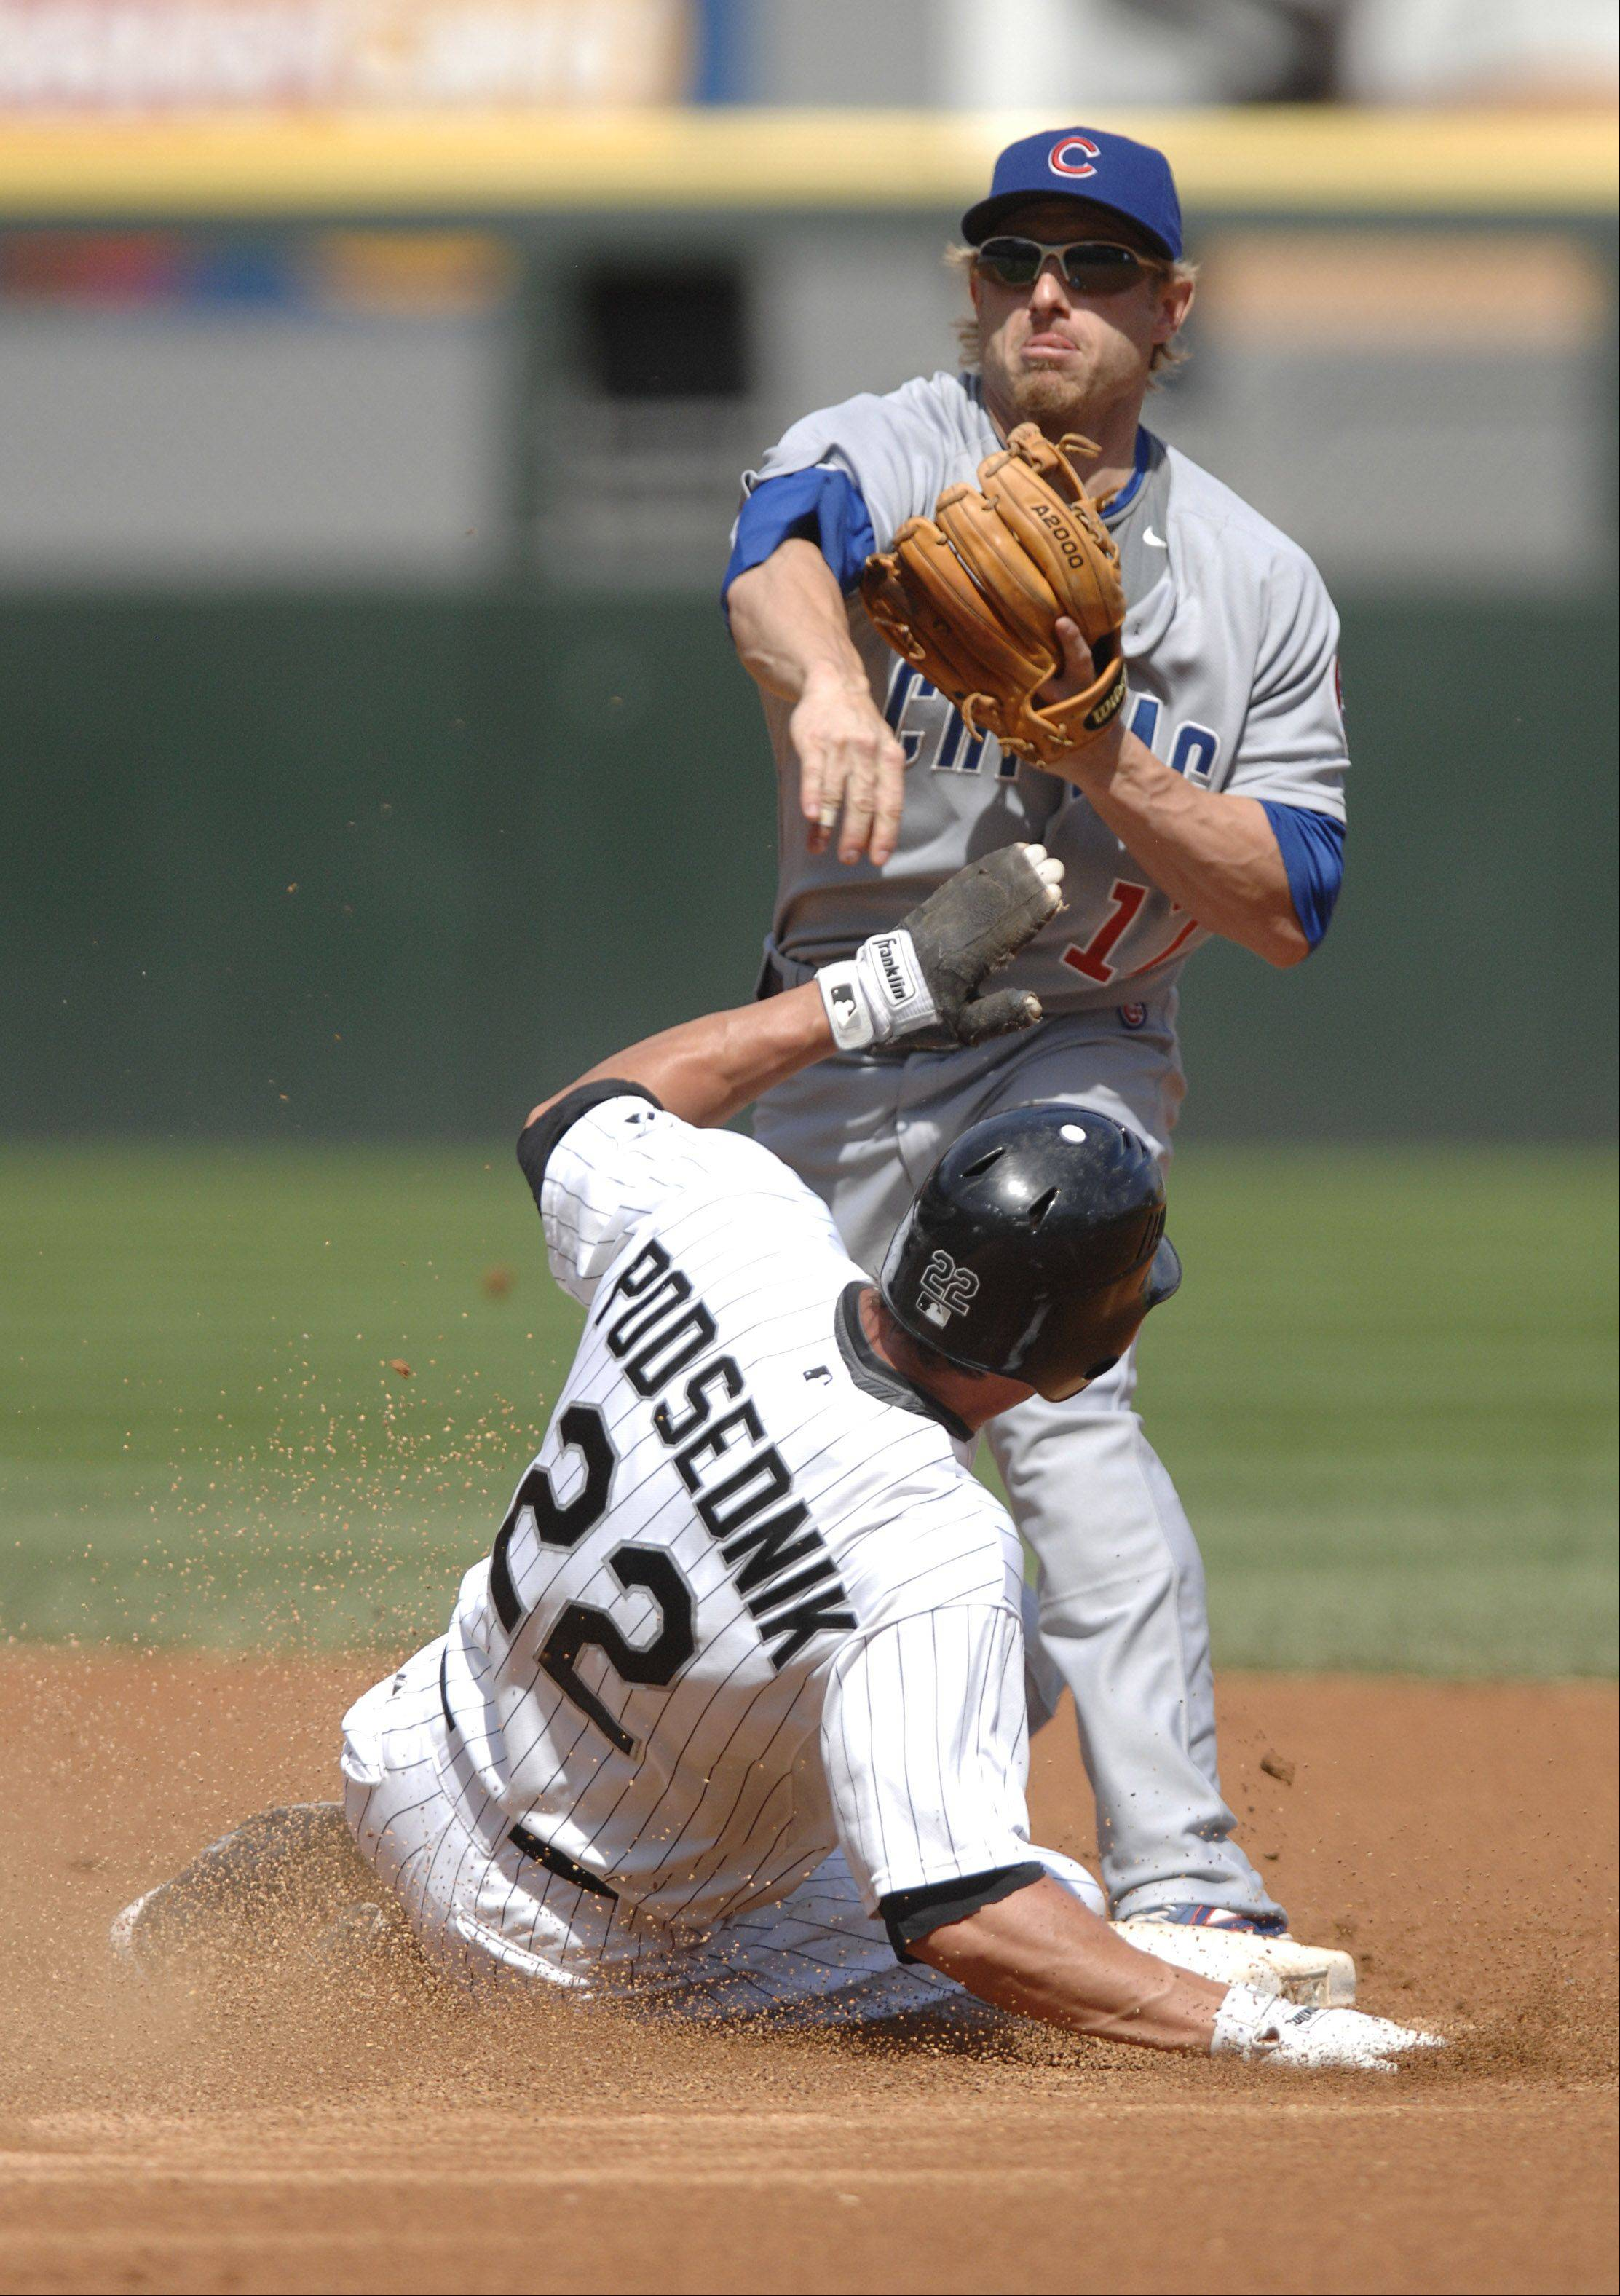 White Sox's Scott Podsednik slides into second and Chicago Cubs secondbaseman Mike Fontenot in the first inning of the Crosstown Classic at U.S. Cellular Field on Friday, June 26 in 2009.